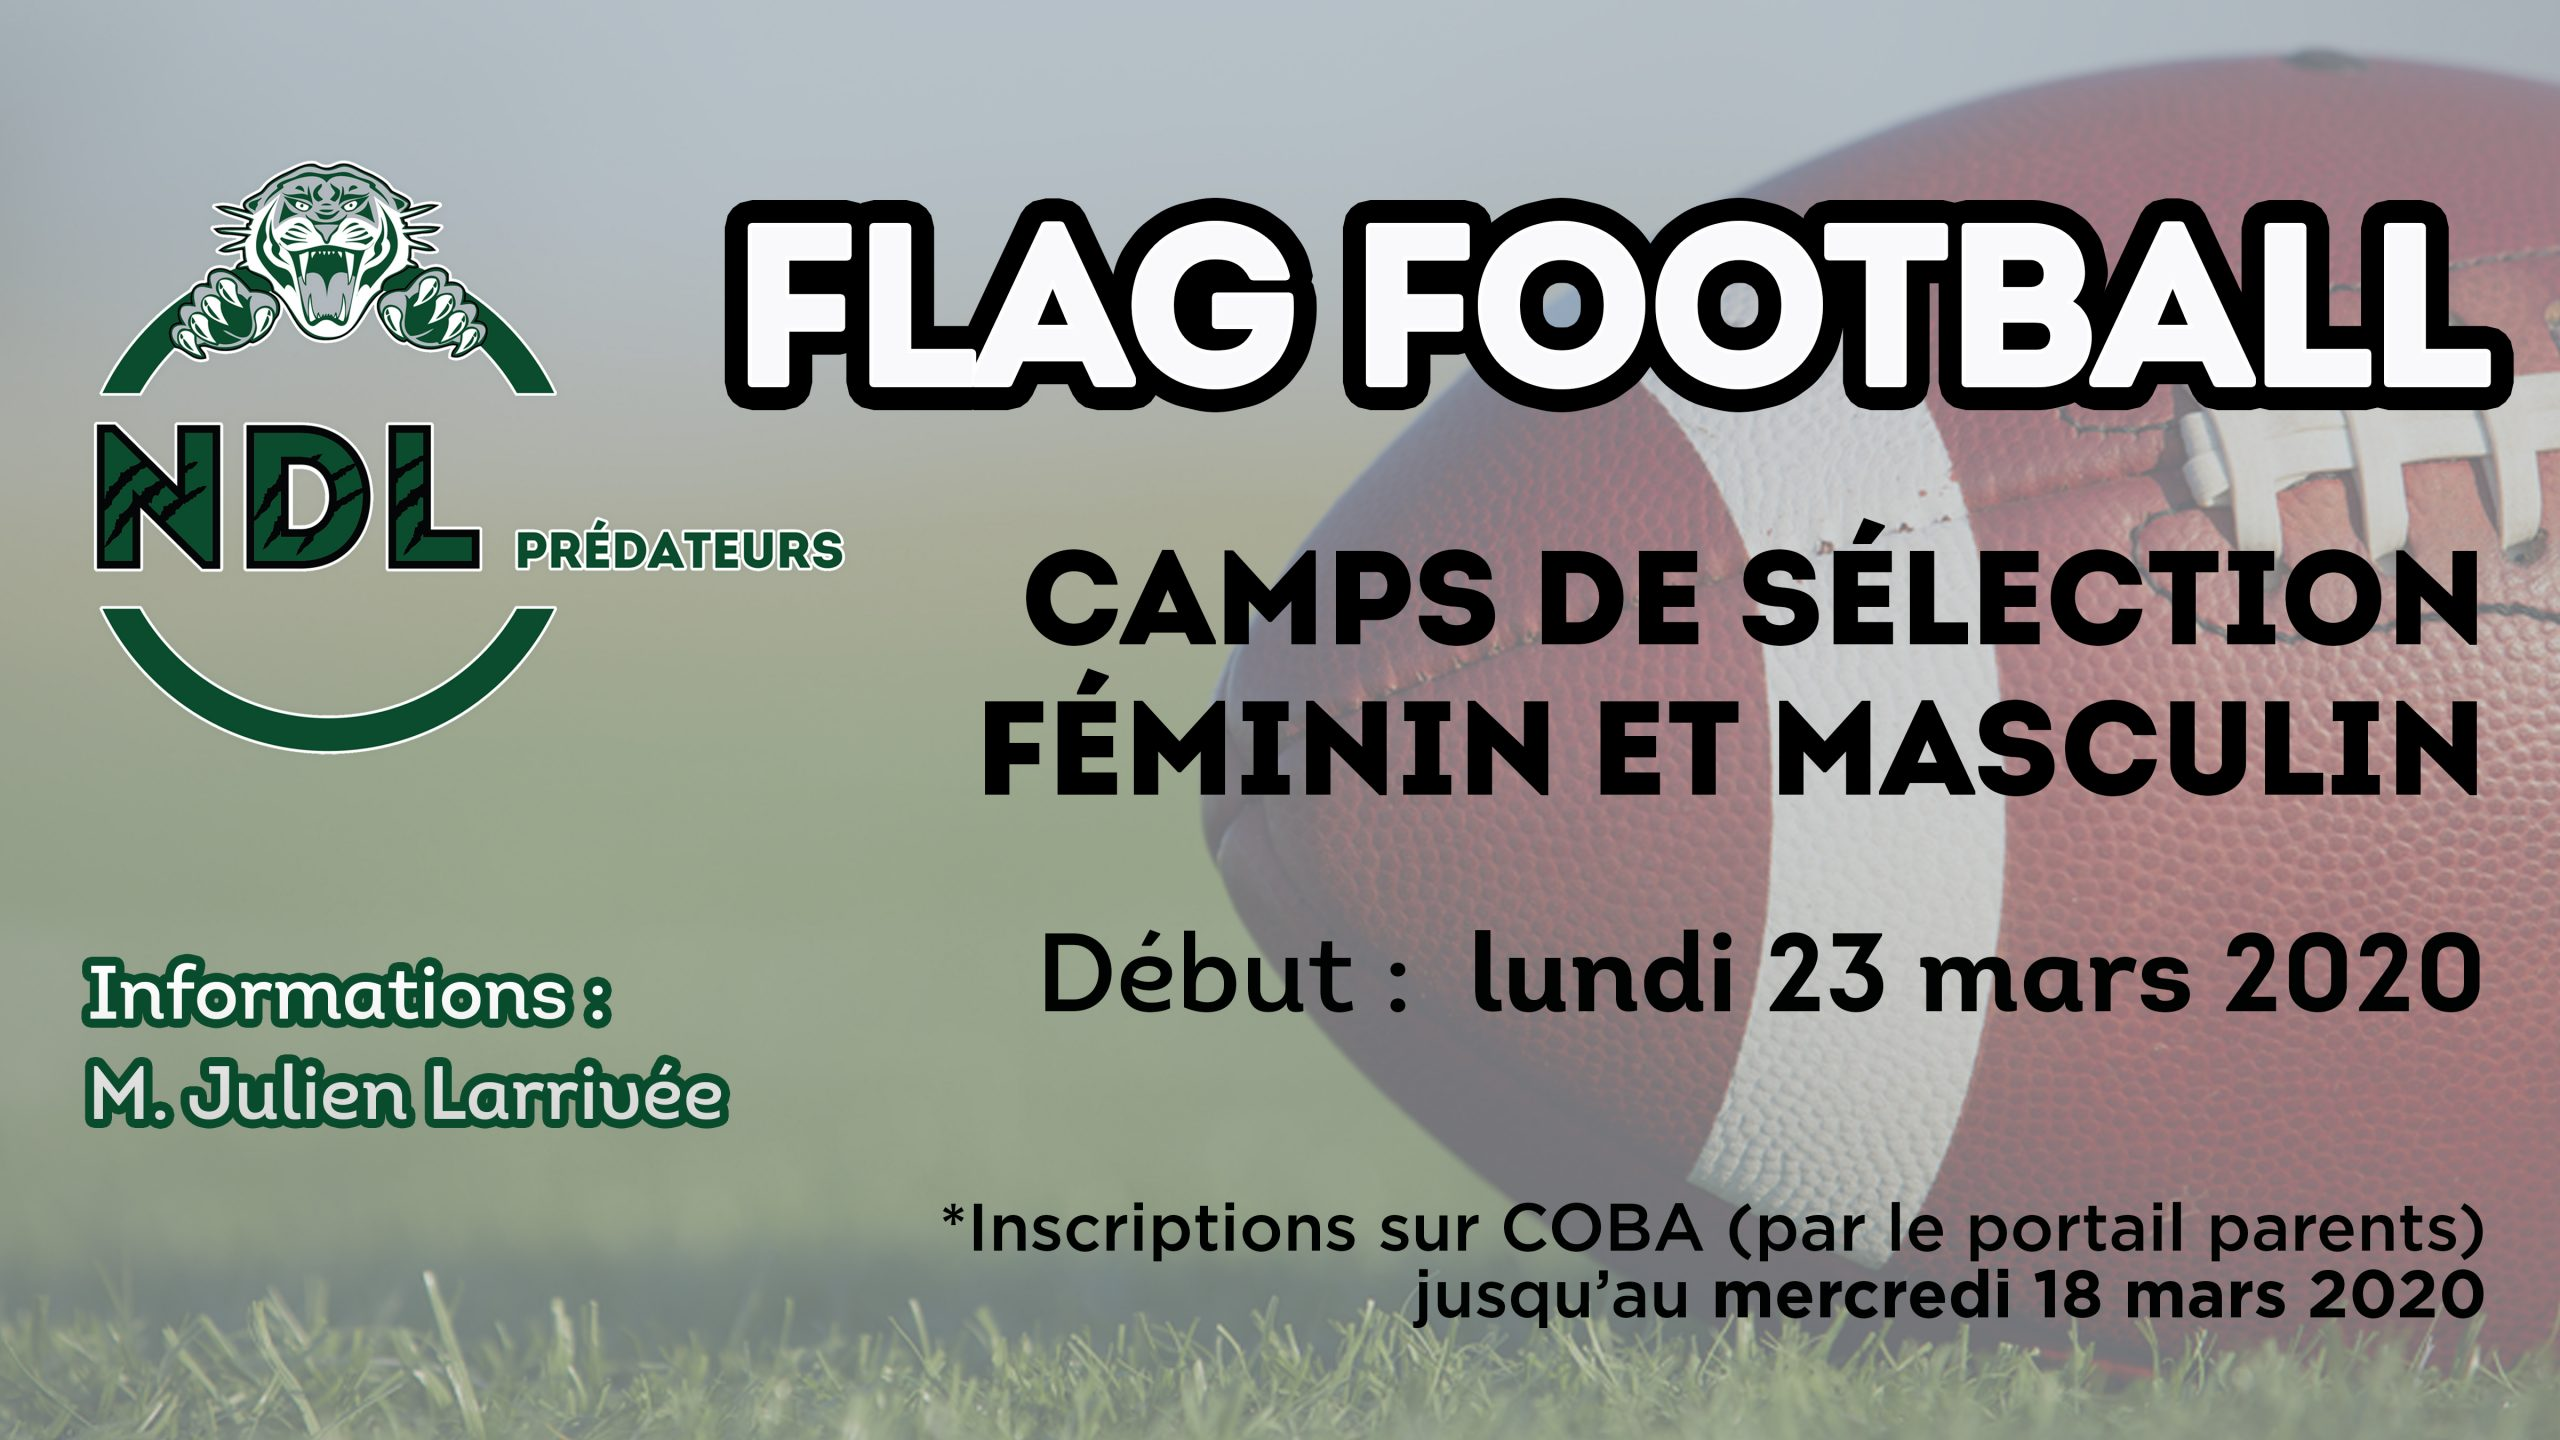 Prédateurs NDL FlagFoot-inscrip 2020